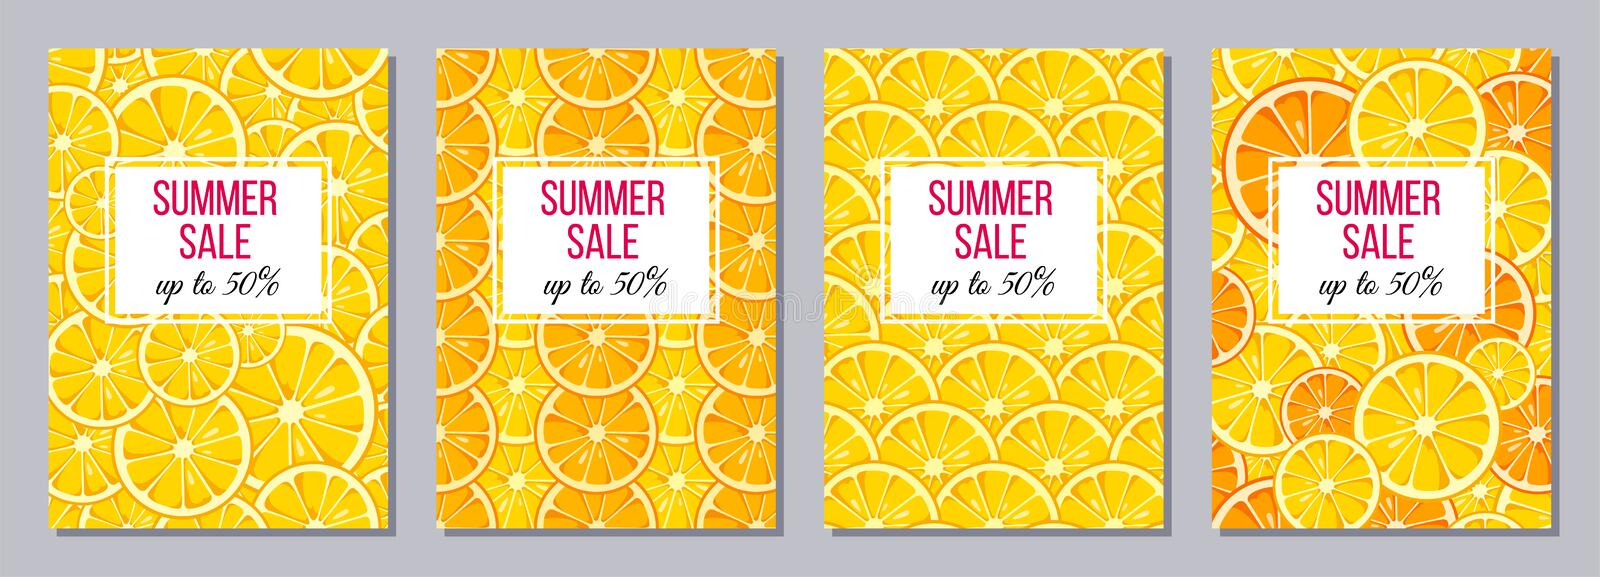 Summer Sale templates A6 size. vector illustration